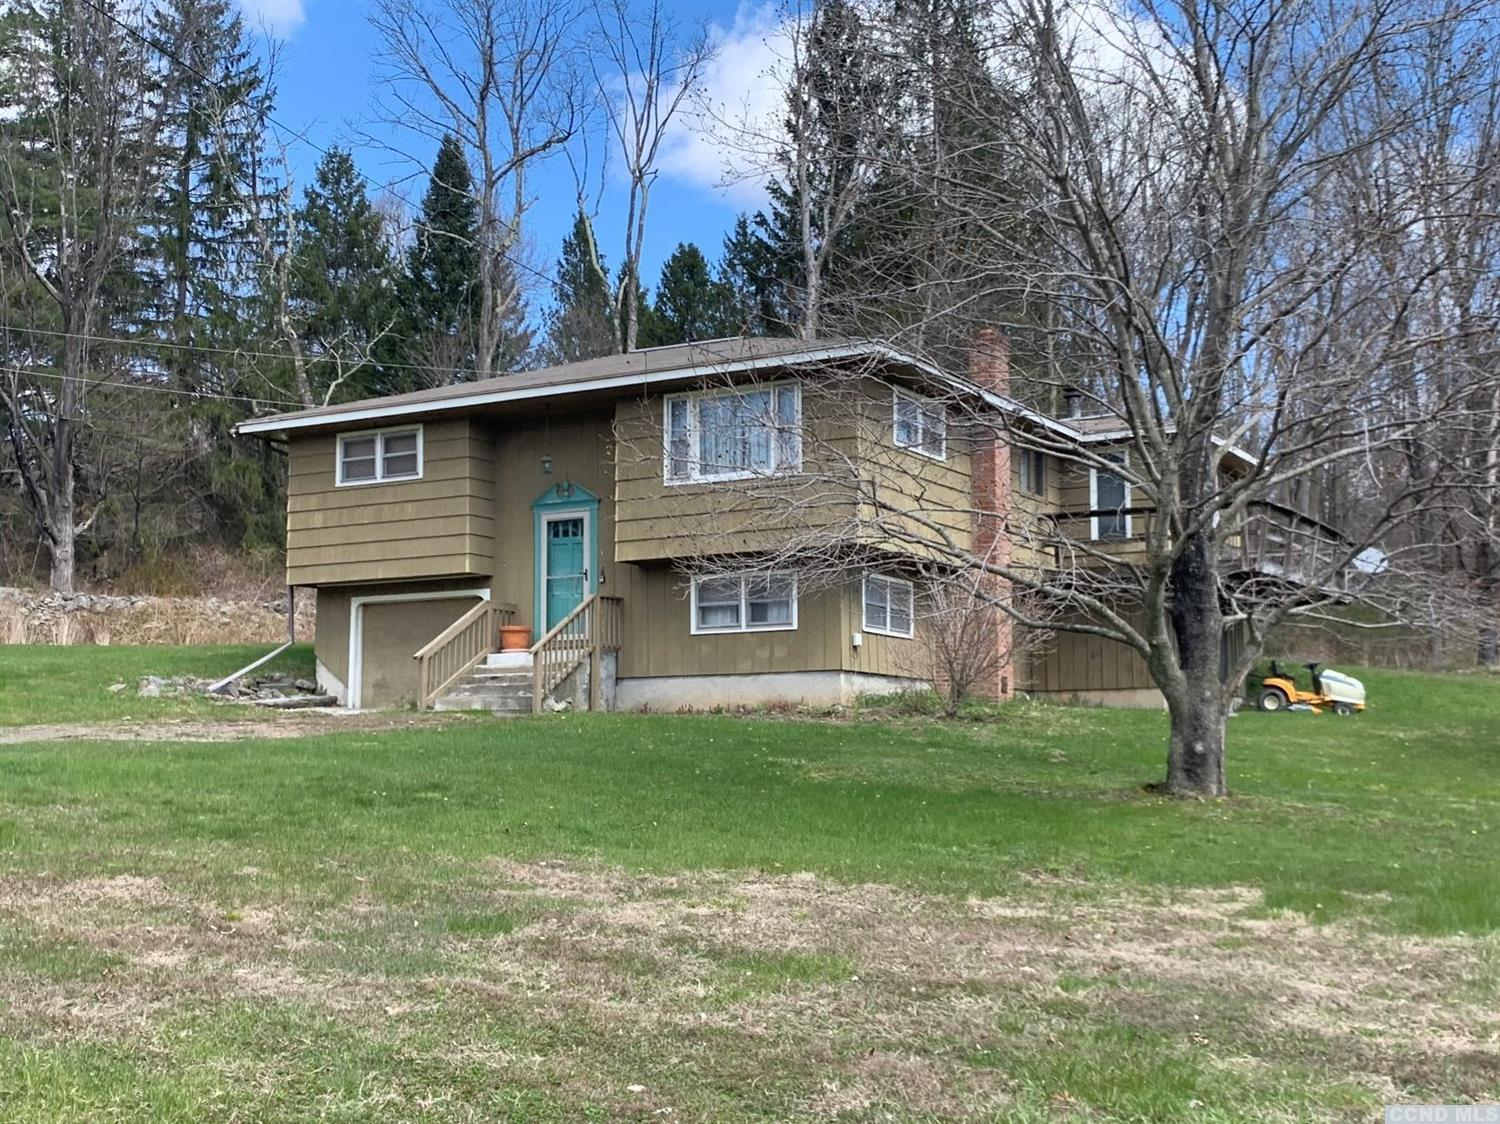 Tidy raised ranch on nearly 7 acres. 2 bedrooms with a possible 3rd. Hardwood floors throughout.  Nice country setting.  Within 30 minutes to Albany, Berkshires, skiing, I-90, Taconic Parkway, Thruway.  Move in ready.